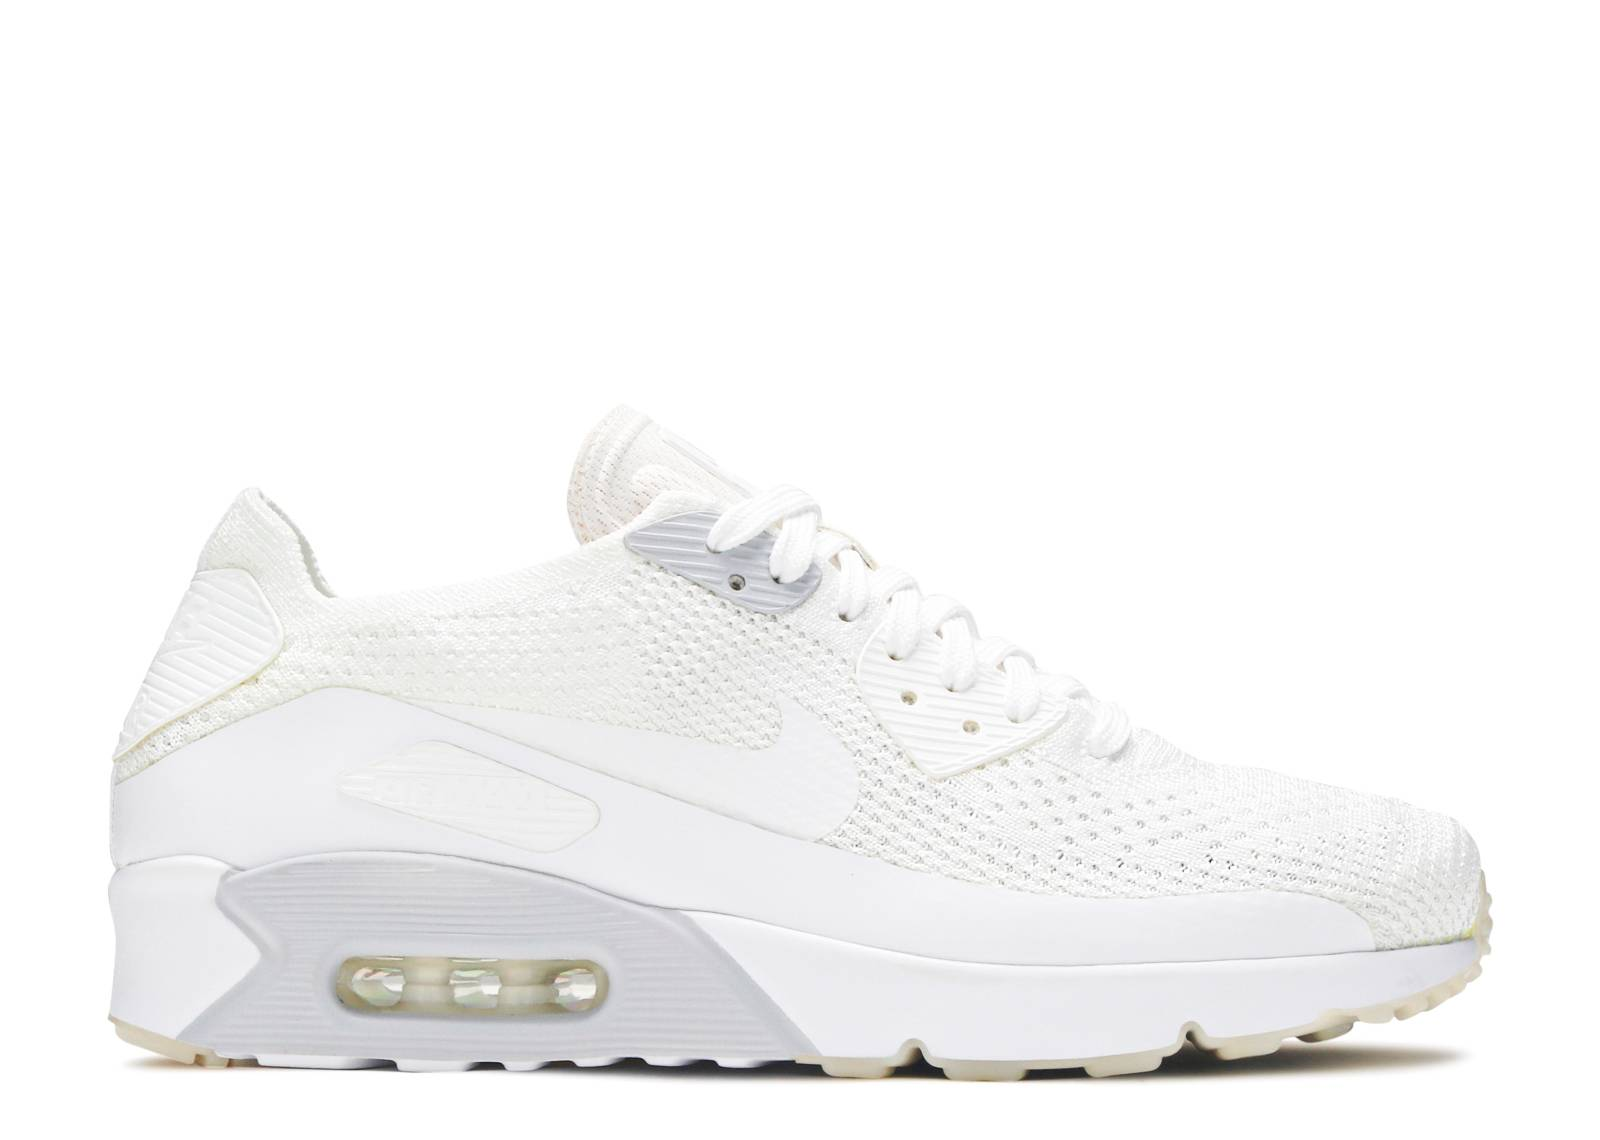 8fa87d65 Air Max 90 Ultra 2.0 Flyknit - Nike - 875943 101 - white/white-pure ...